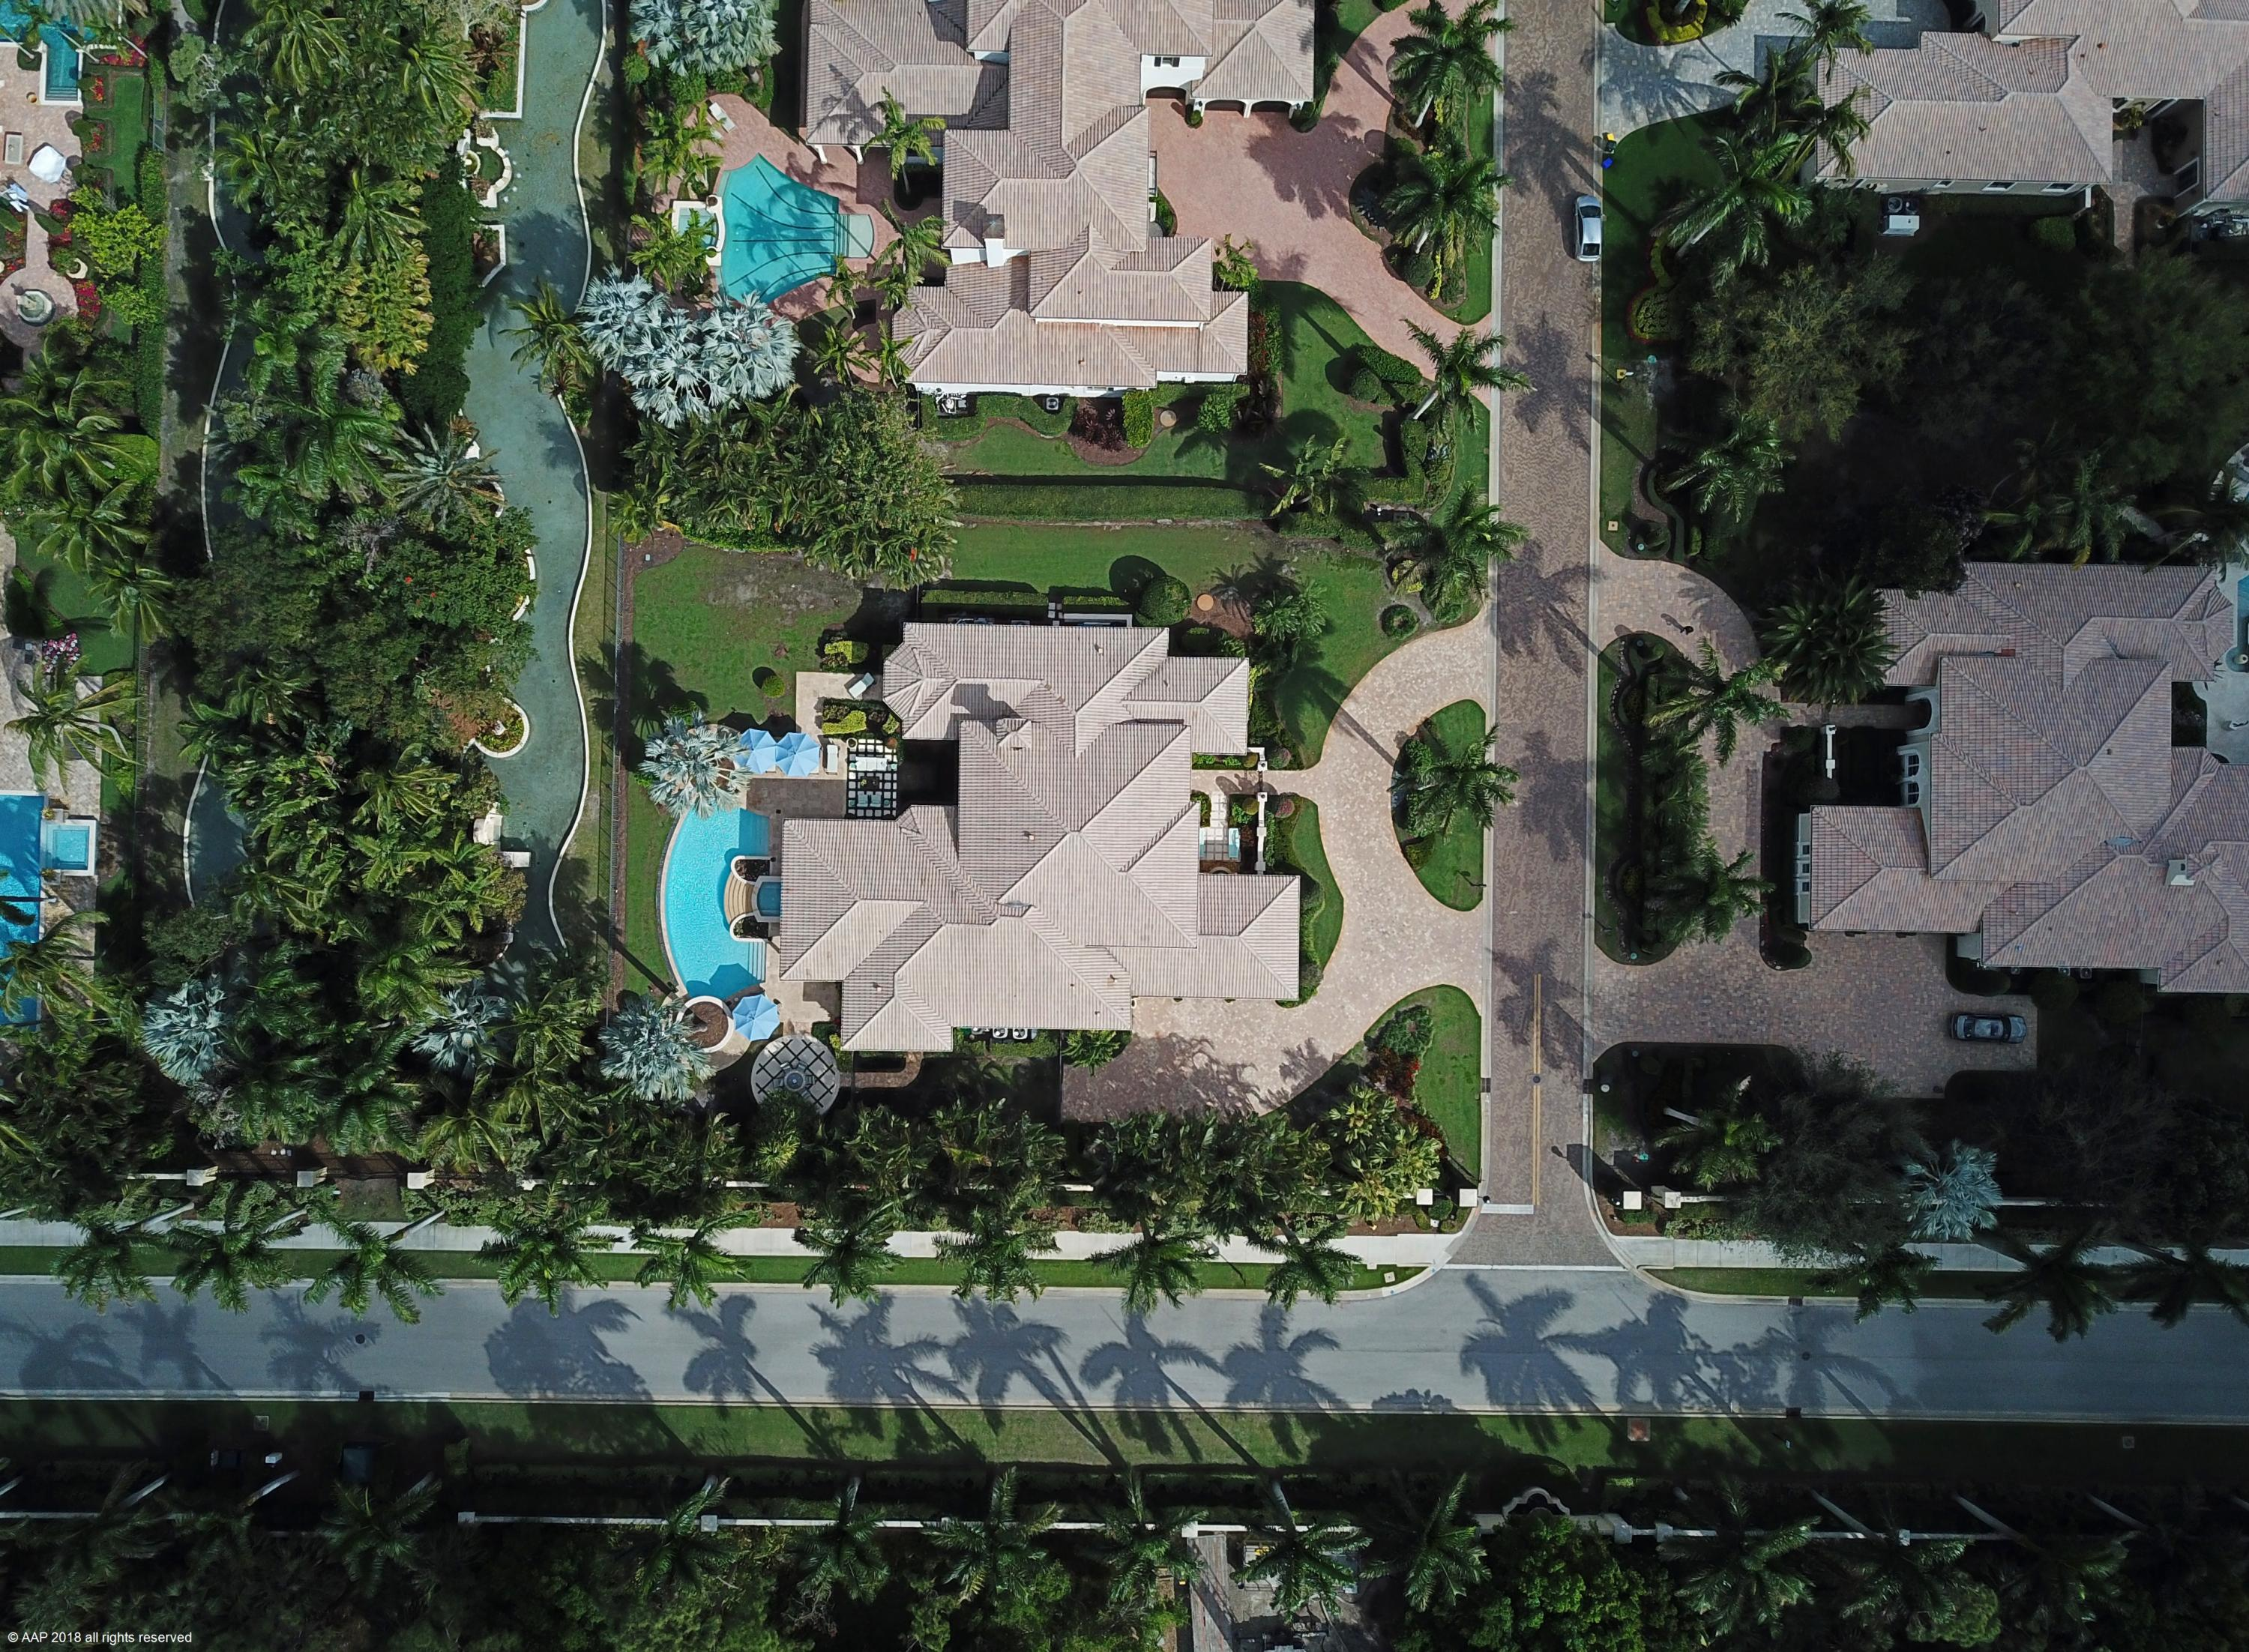 11731 Valeros Court, Palm Beach Gardens, Florida 33418, 4 Bedrooms Bedrooms, ,4.1 BathroomsBathrooms,A,Single family,Valeros,RX-10408043